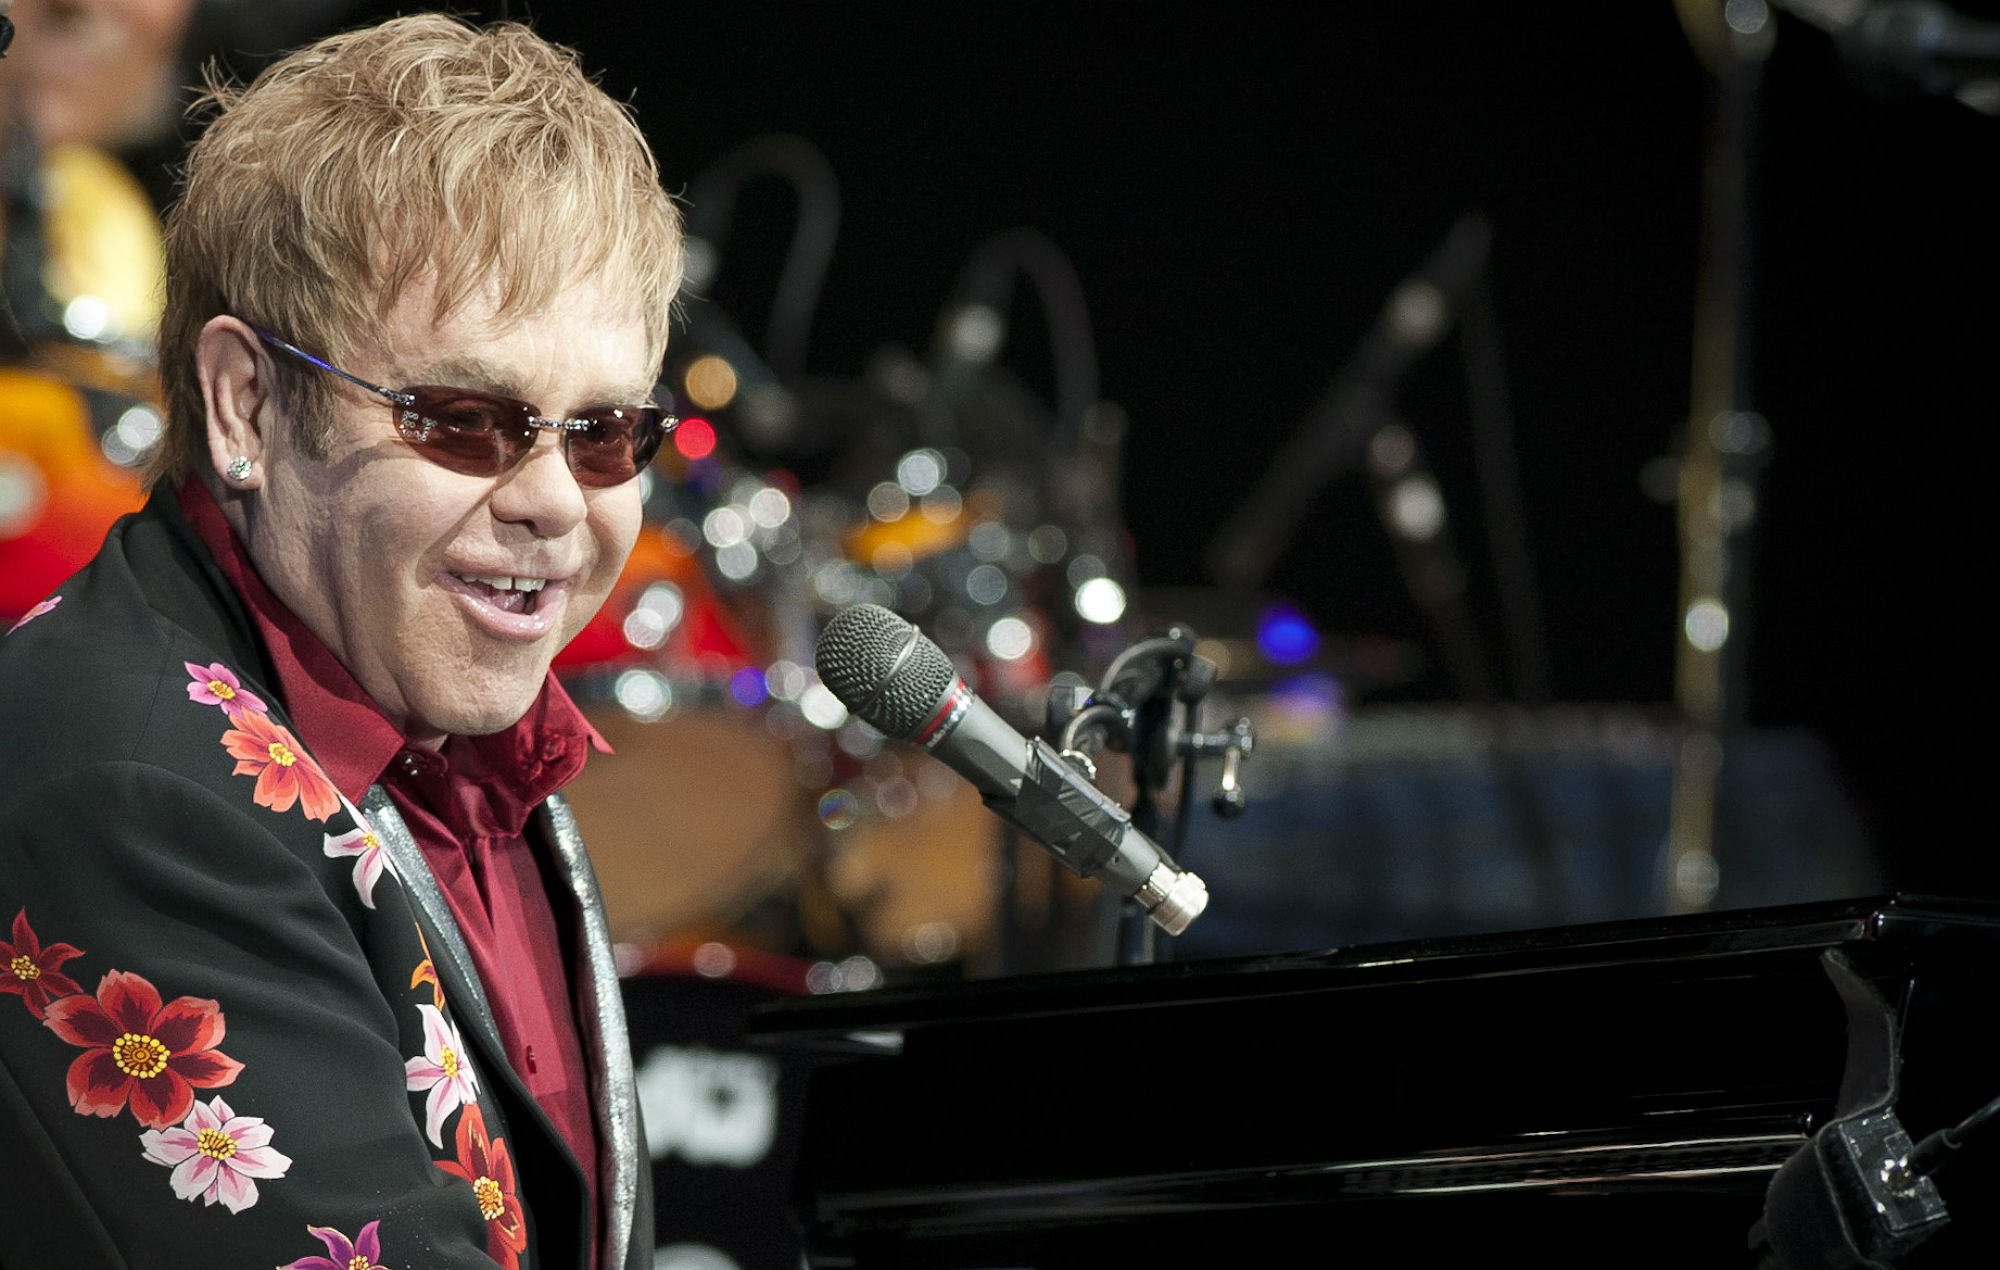 It doesn't look like Elton John will be playing Glastonbury 2020 after all